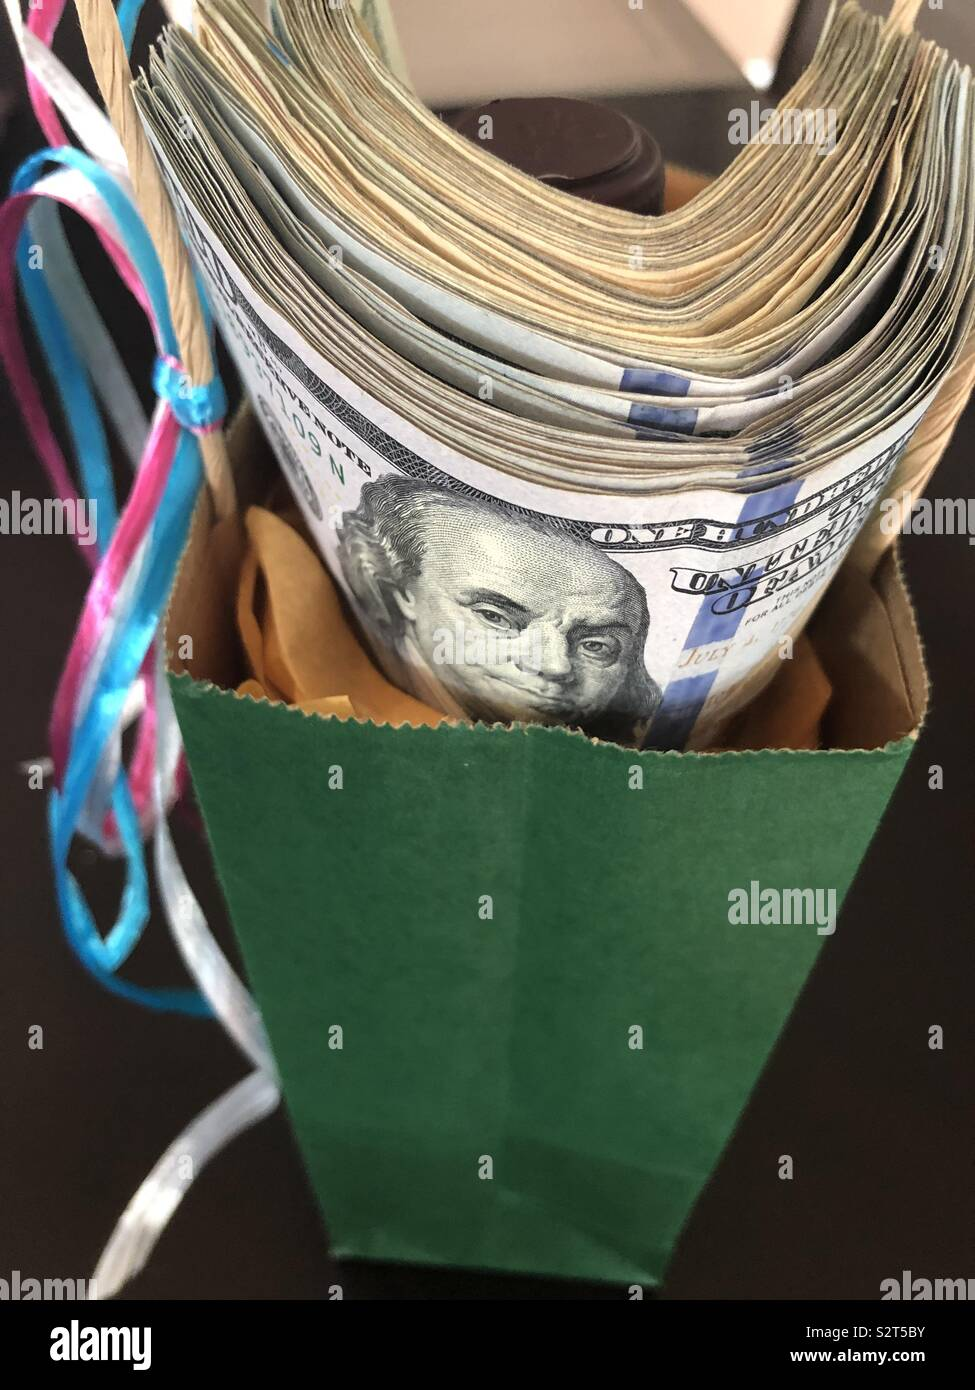 Money gift bag - Stock Image